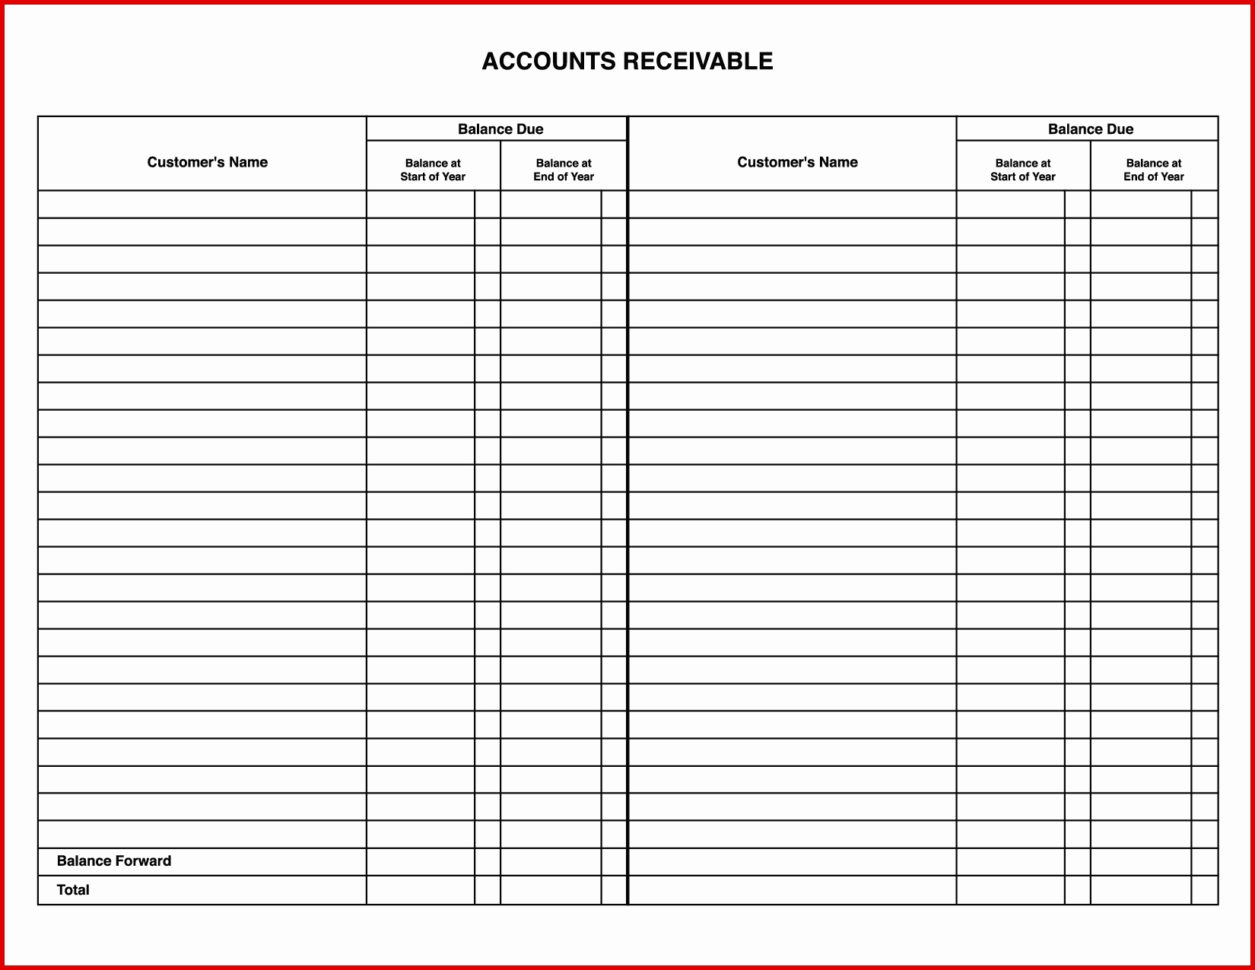 Accounts Payable Spreadsheet Example With Accounts Payable Template  Charlotte Clergy Coalition